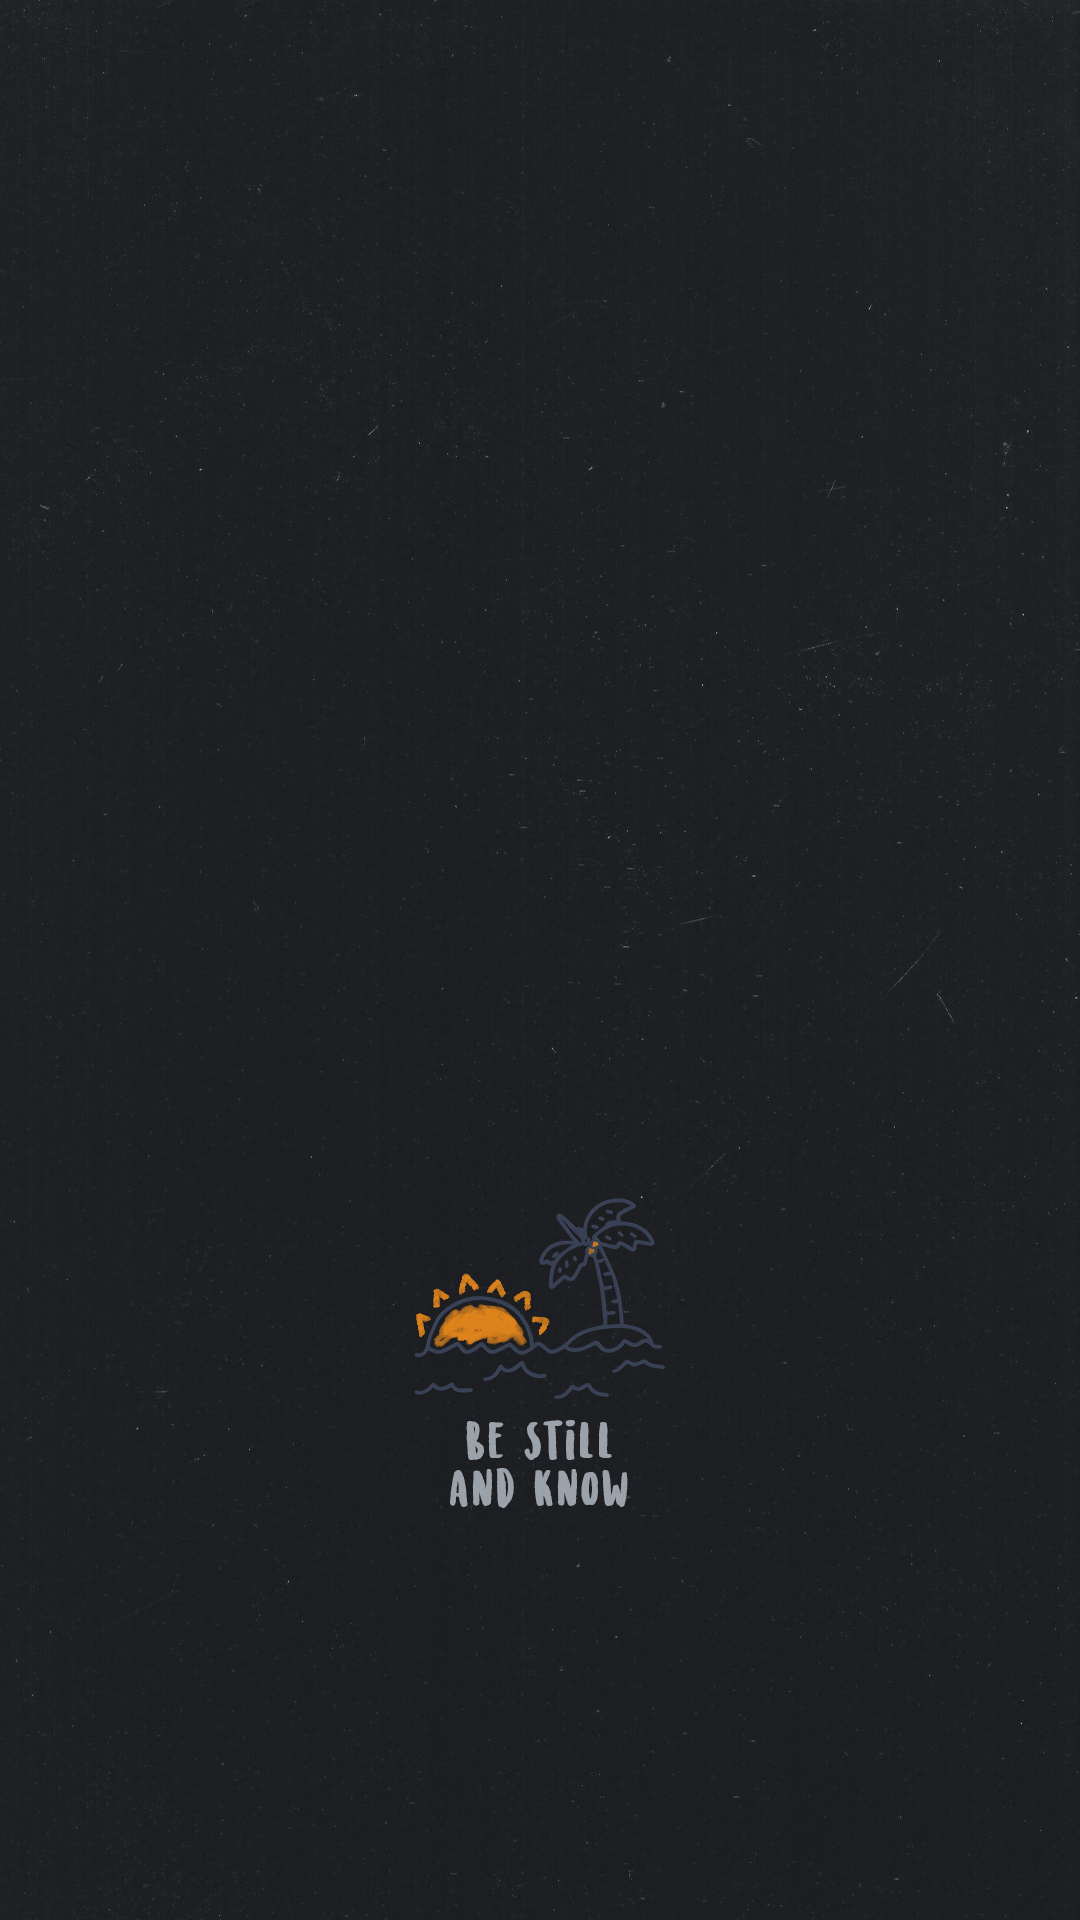 Be Still And Know In 2020 Christian Wallpaper Christian Iphone Wallpaper Worship Wallpaper